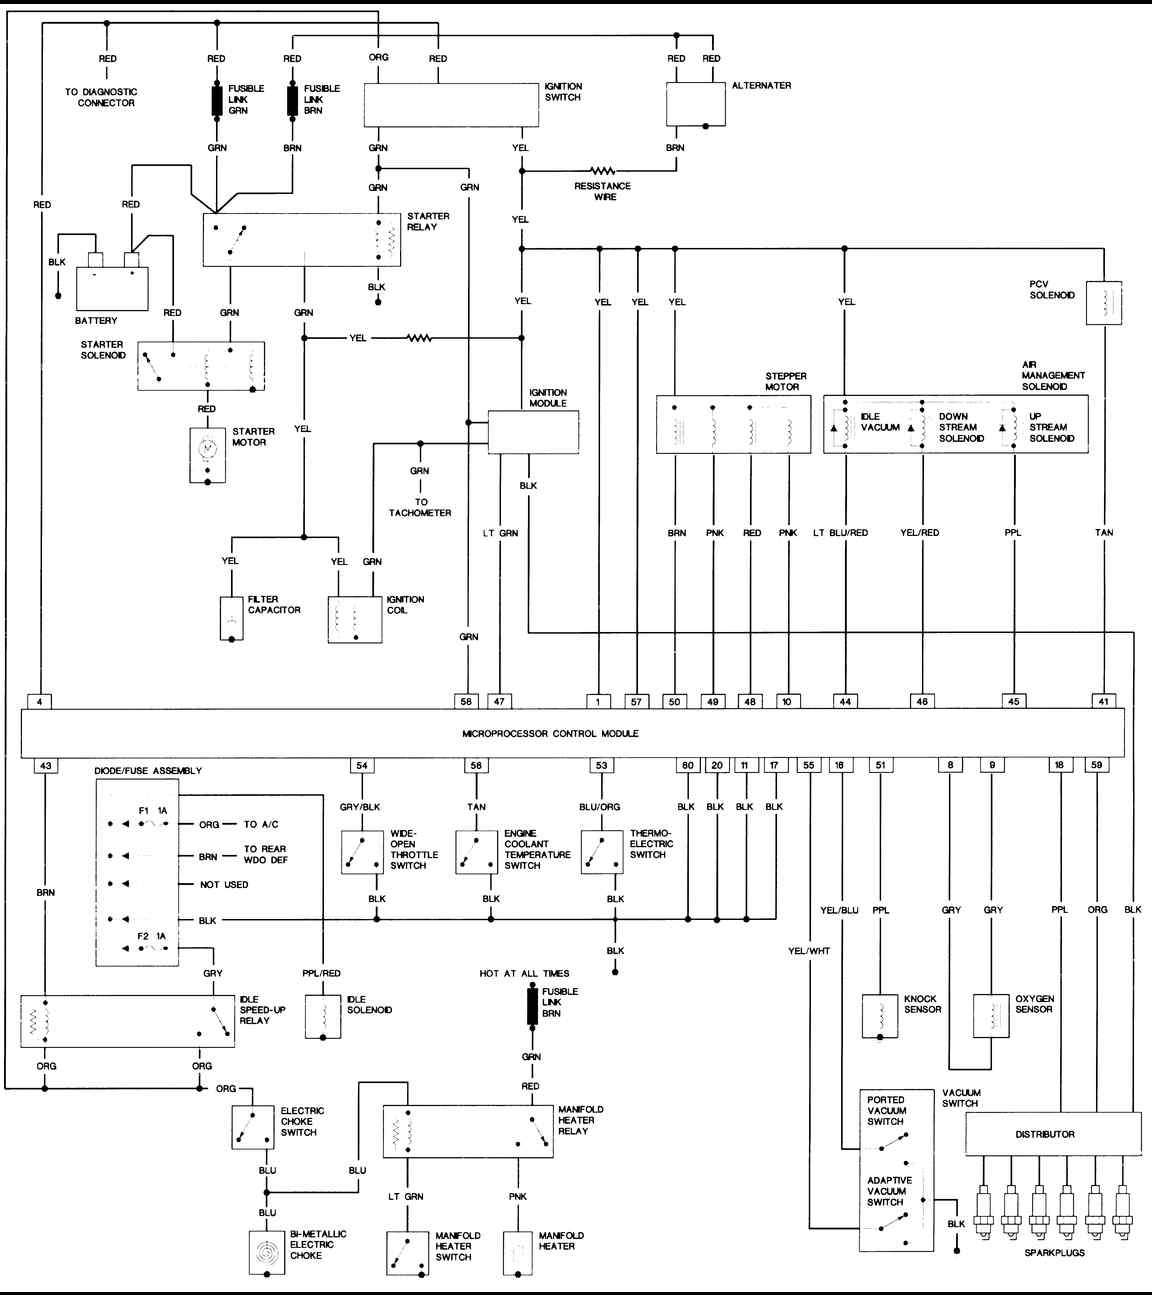 two wire alternator wiring diagram 2006 jeep wrangler two wire thermostat wiring diagram 1987 jeep wrangler 4.2l engine(large) - freeautomechanic